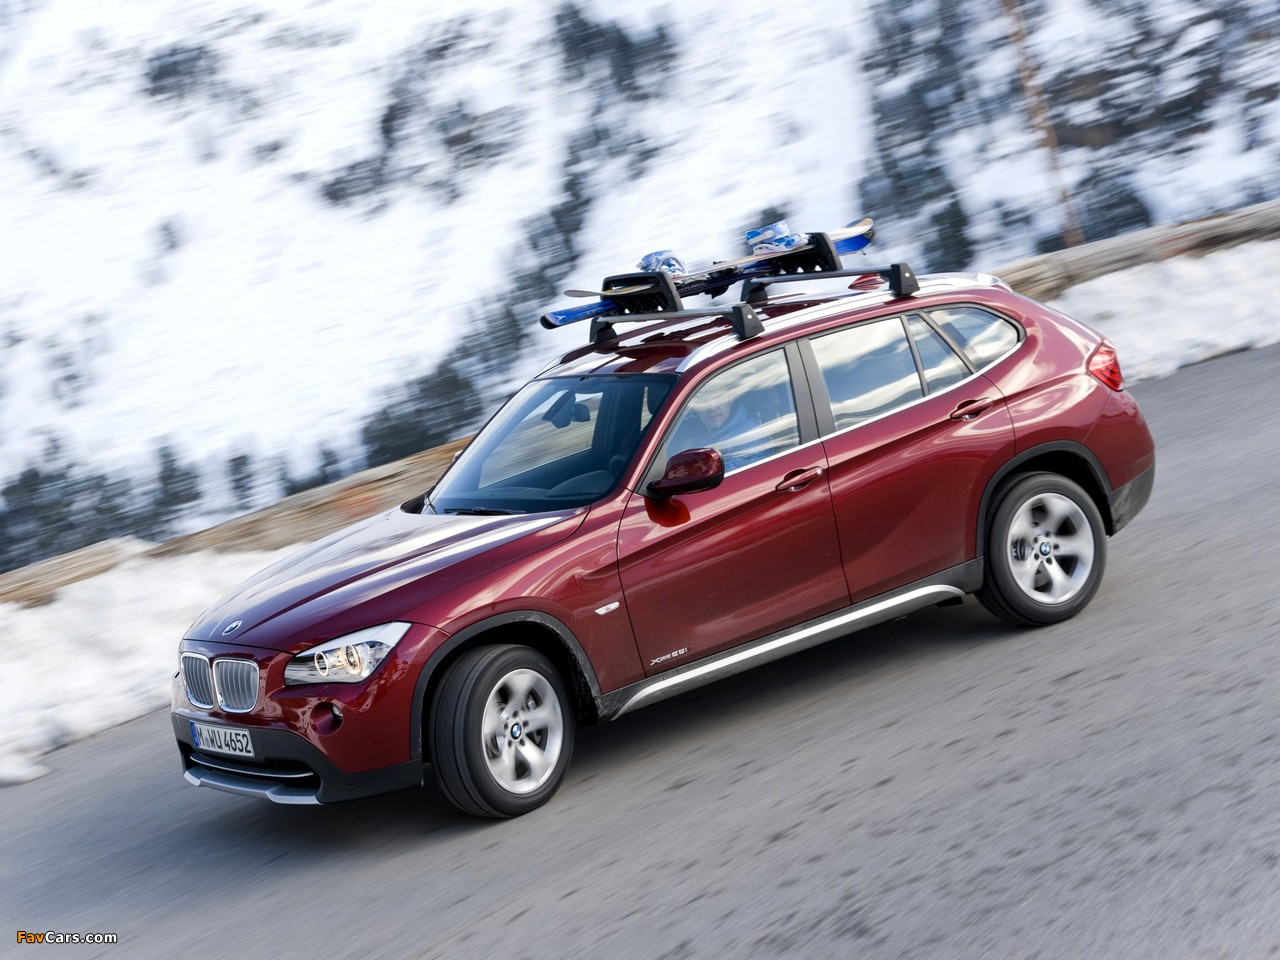 Pictures Of Bmw X1 Xdrive28i E84 2011 1280x960